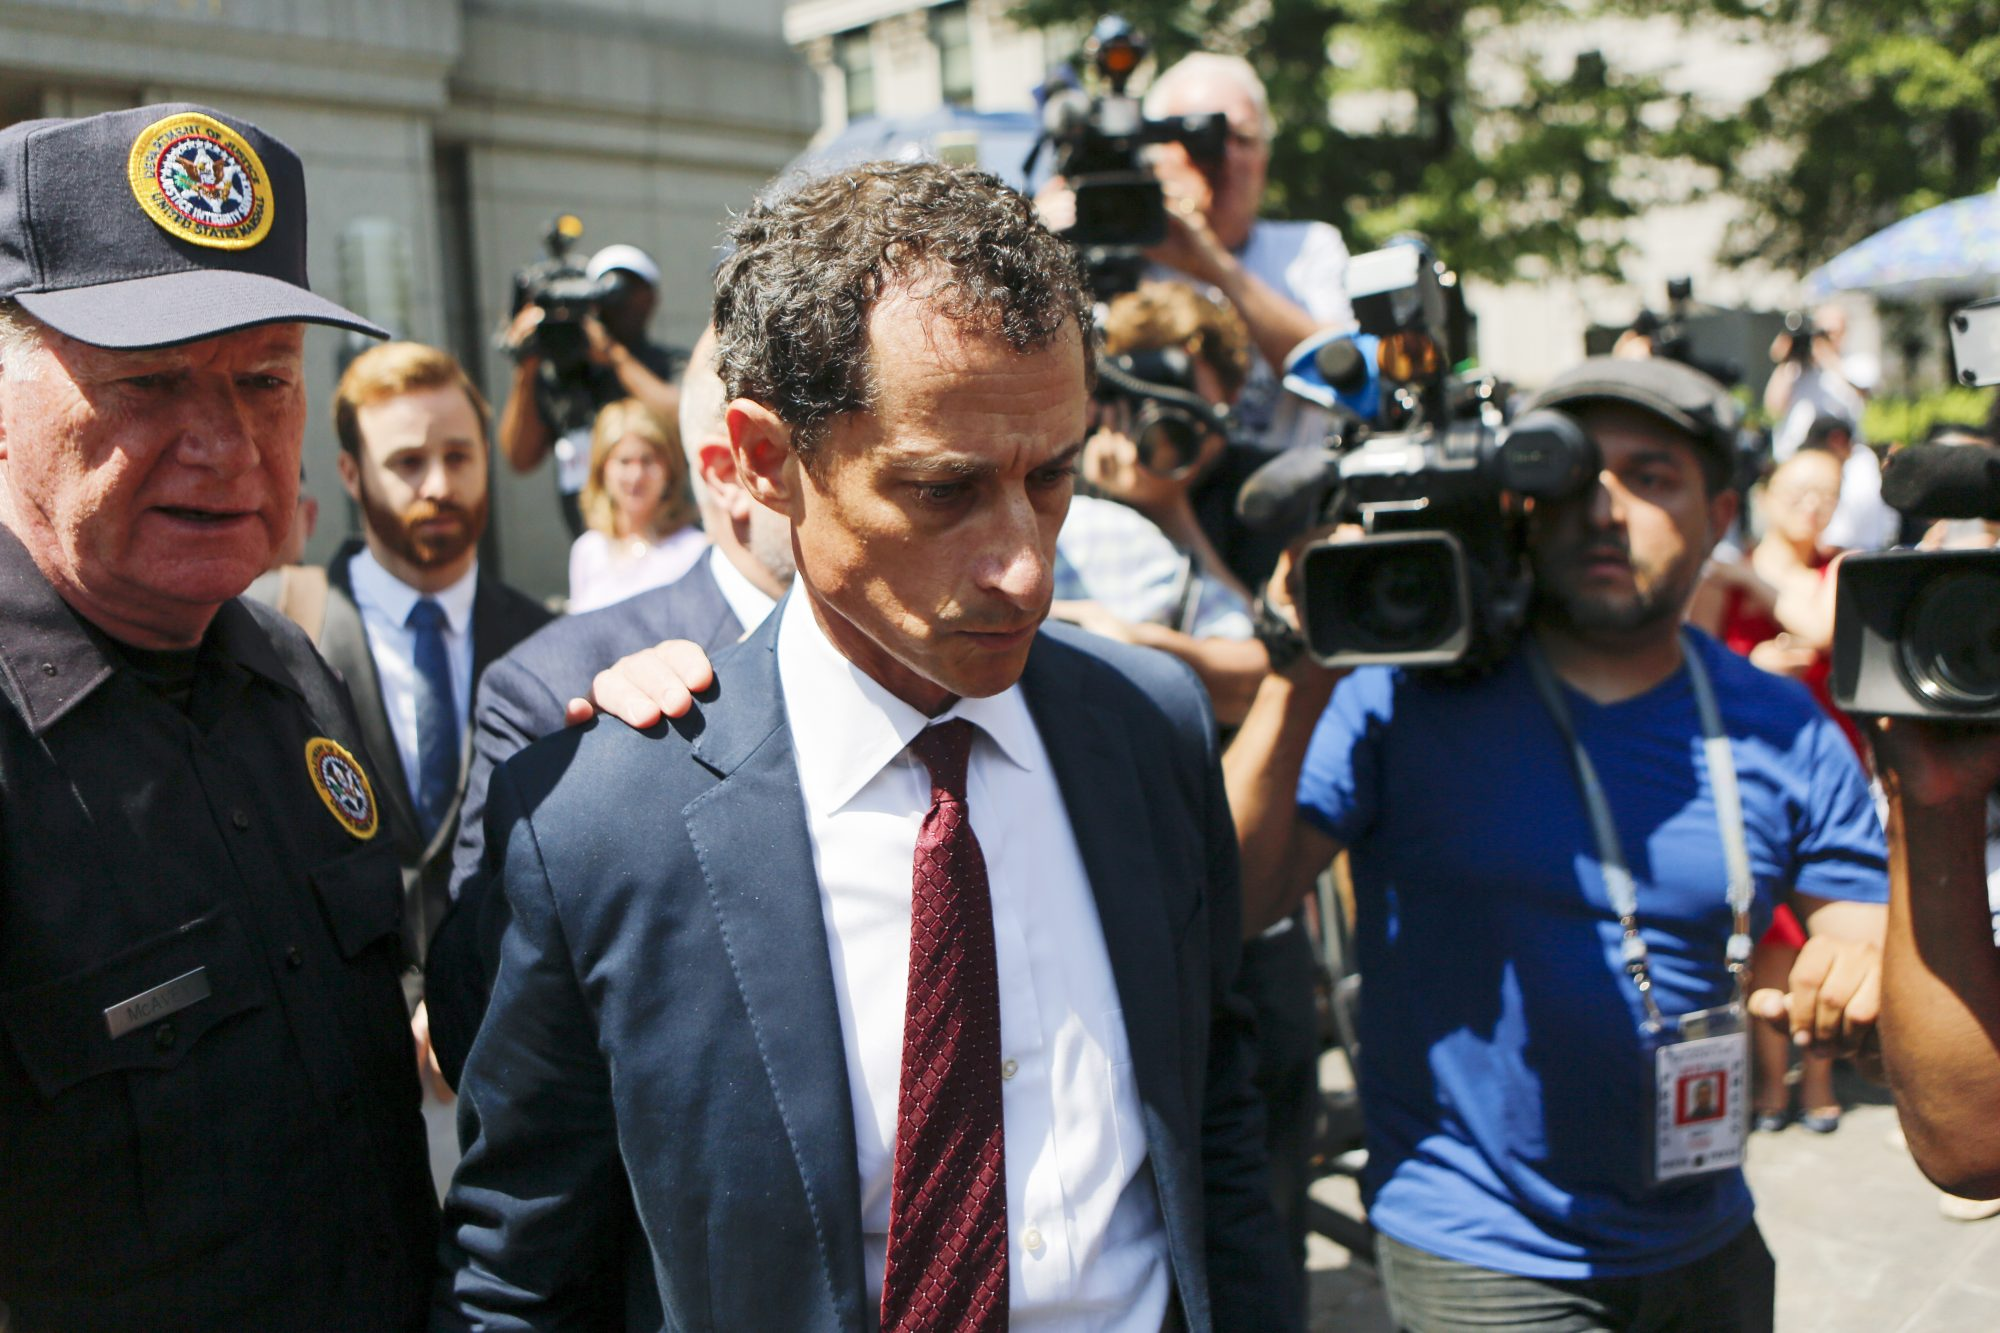 Anthony Weiner Gets Federal Prison for Sexting Teenager—in Case That Shook Presidential Election